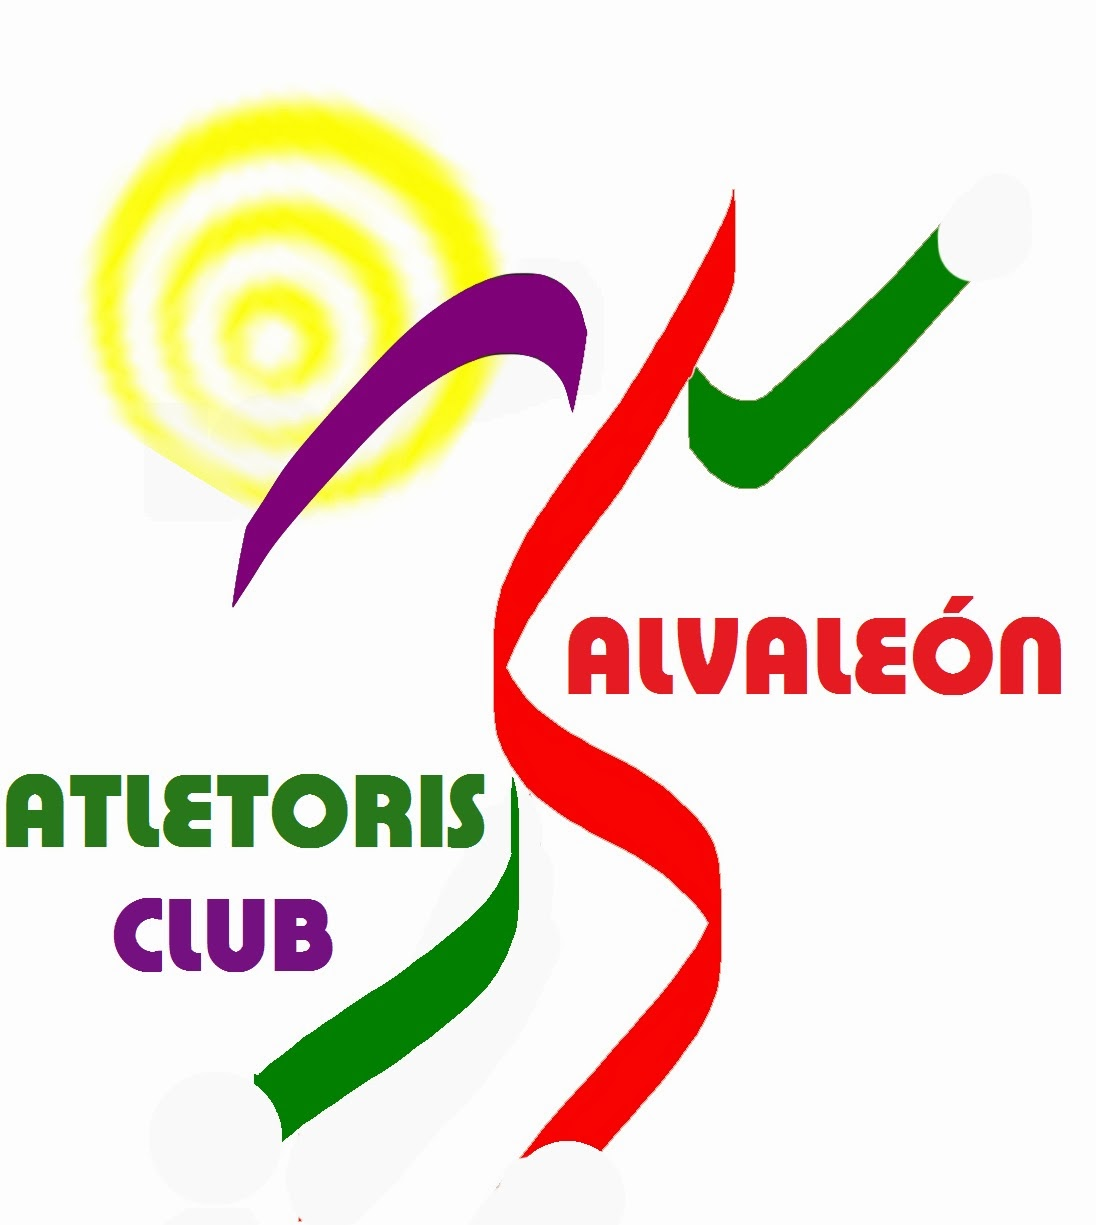 Atletoris